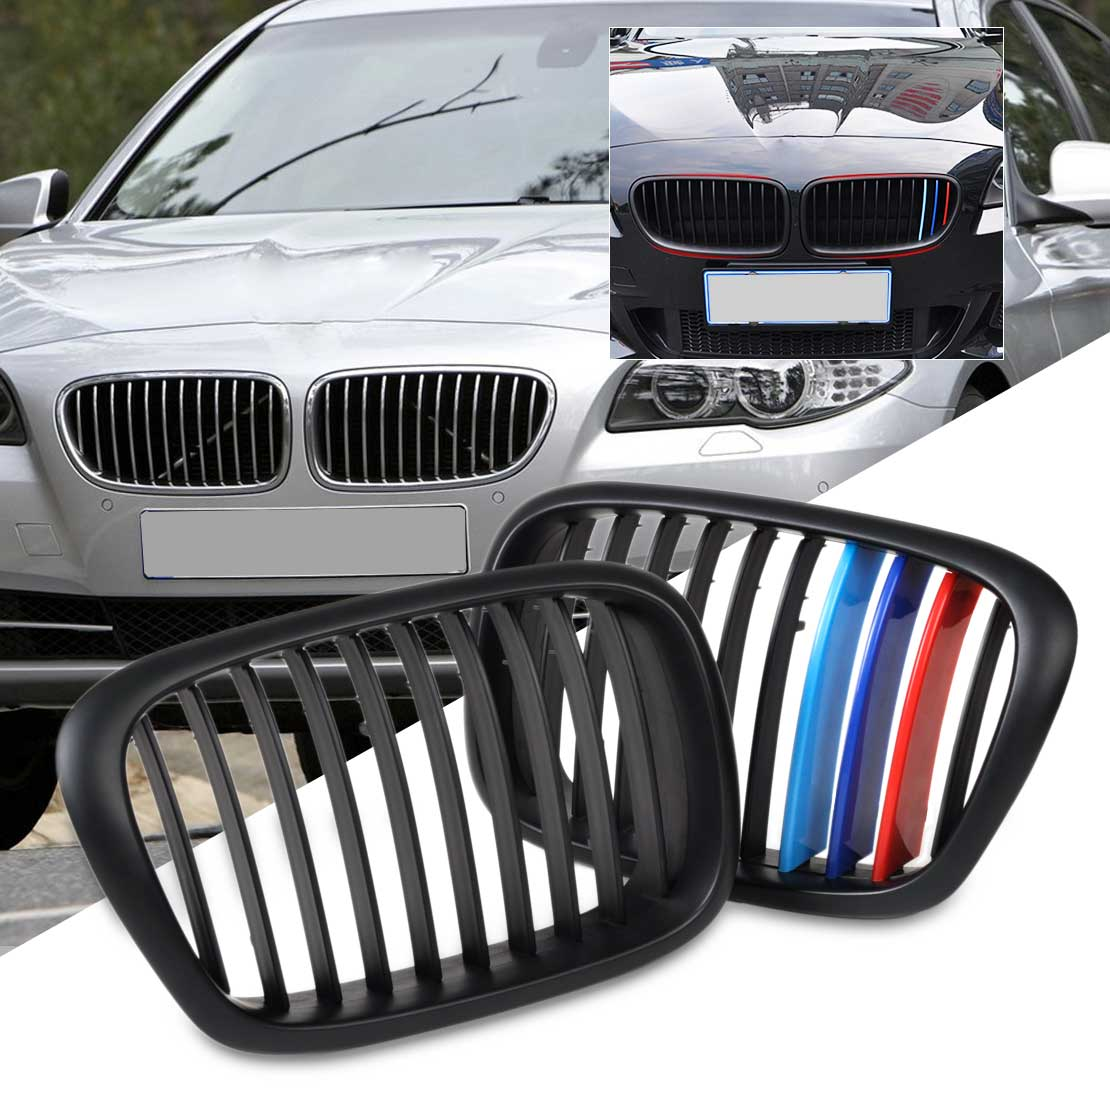 beler 2x New Front Gloss Wide Kidney Grille Grill + 3 Pieces Colored Adhesive Tape set for BMW 5 Series E39 1995-2002 2003 2004 2016 new a pair front grilles left and right double line grille gloss black front grills for bmw 3 series e46 2002 2004 4 door